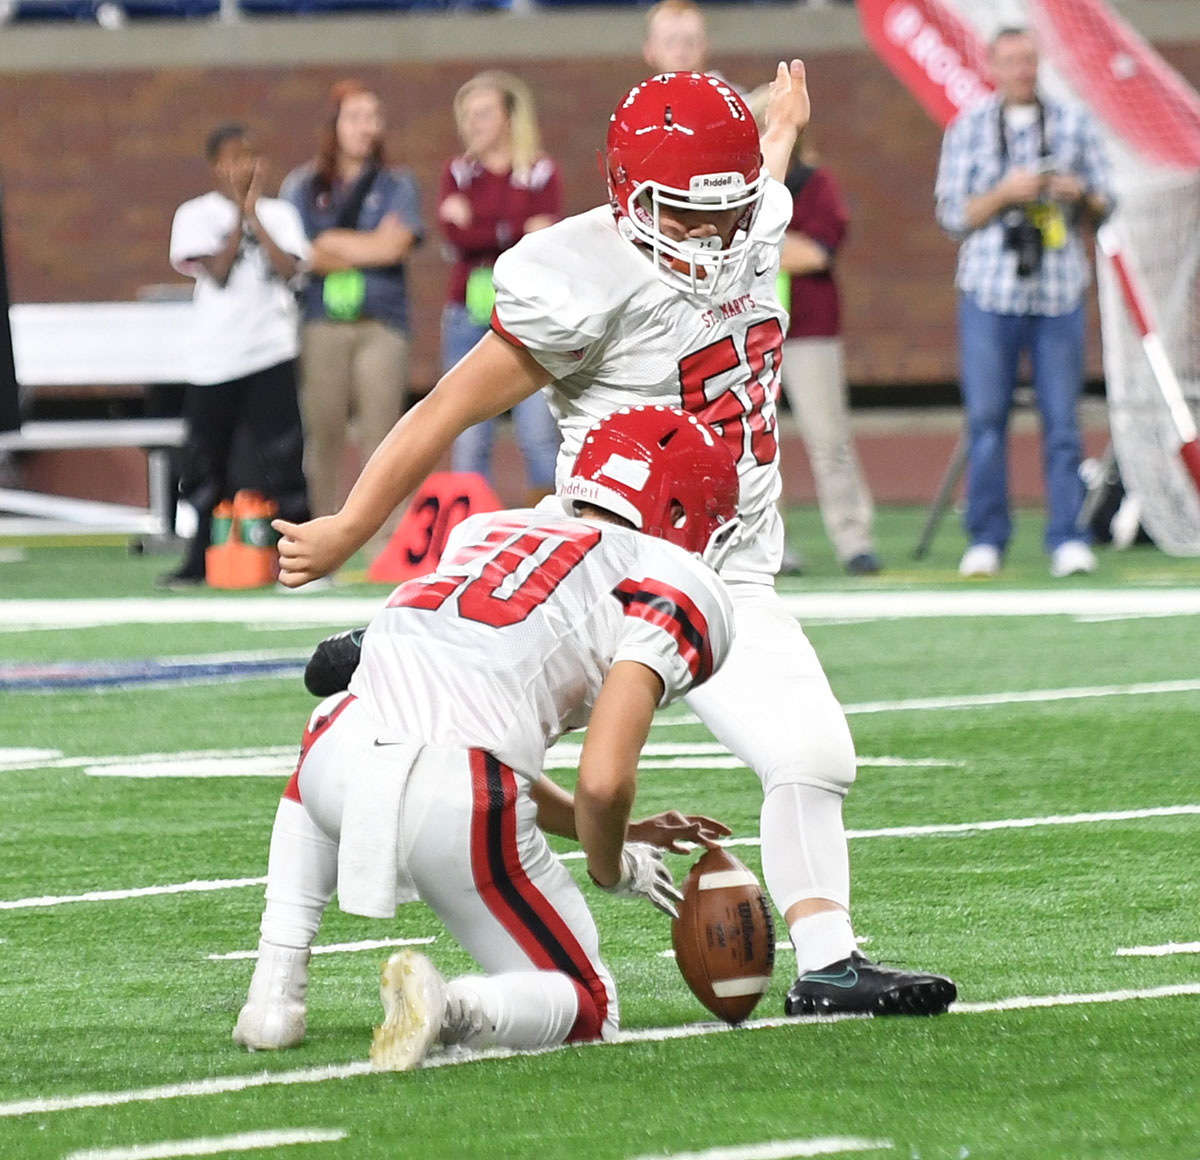 Orchard Lake St. Mary's kicker Ben Fee tied a finals game record with three field goals, including a finals game record 49-yarder in the second half.